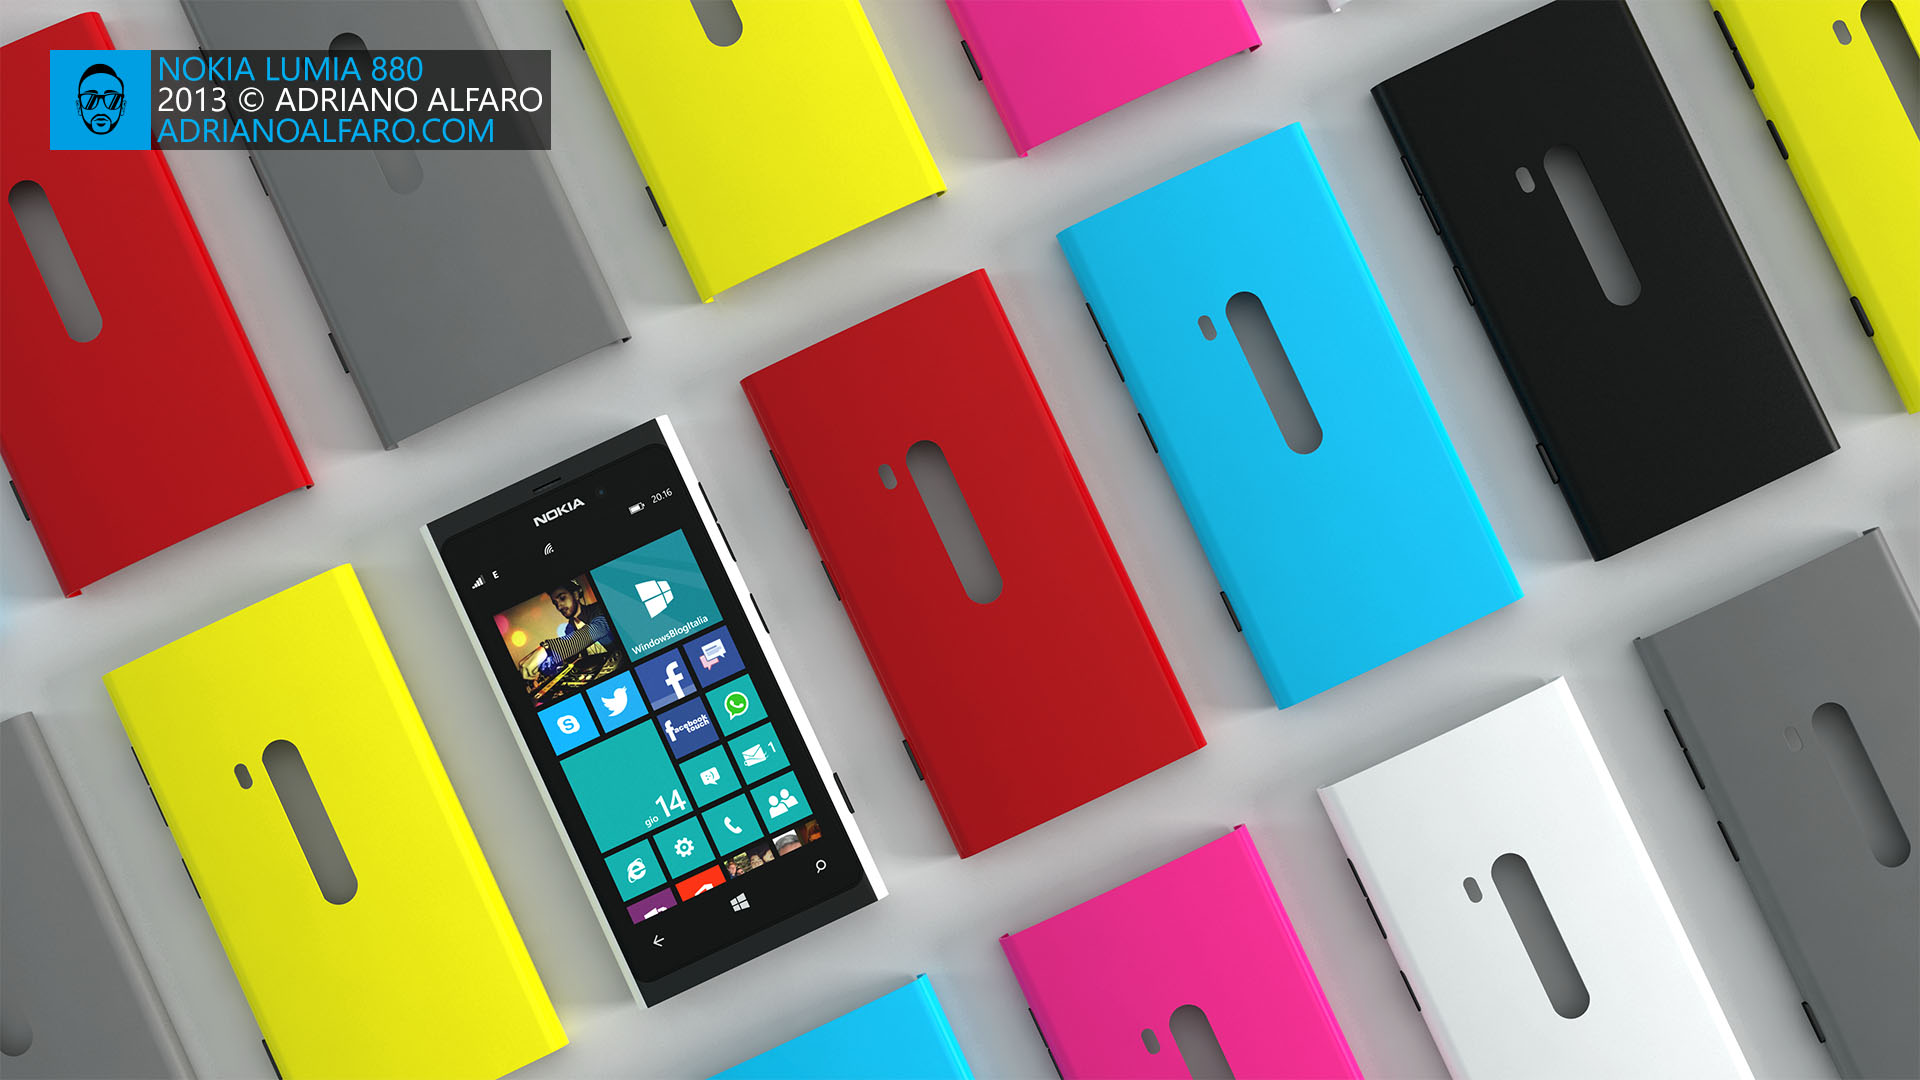 nokia_lumia_880_pattern